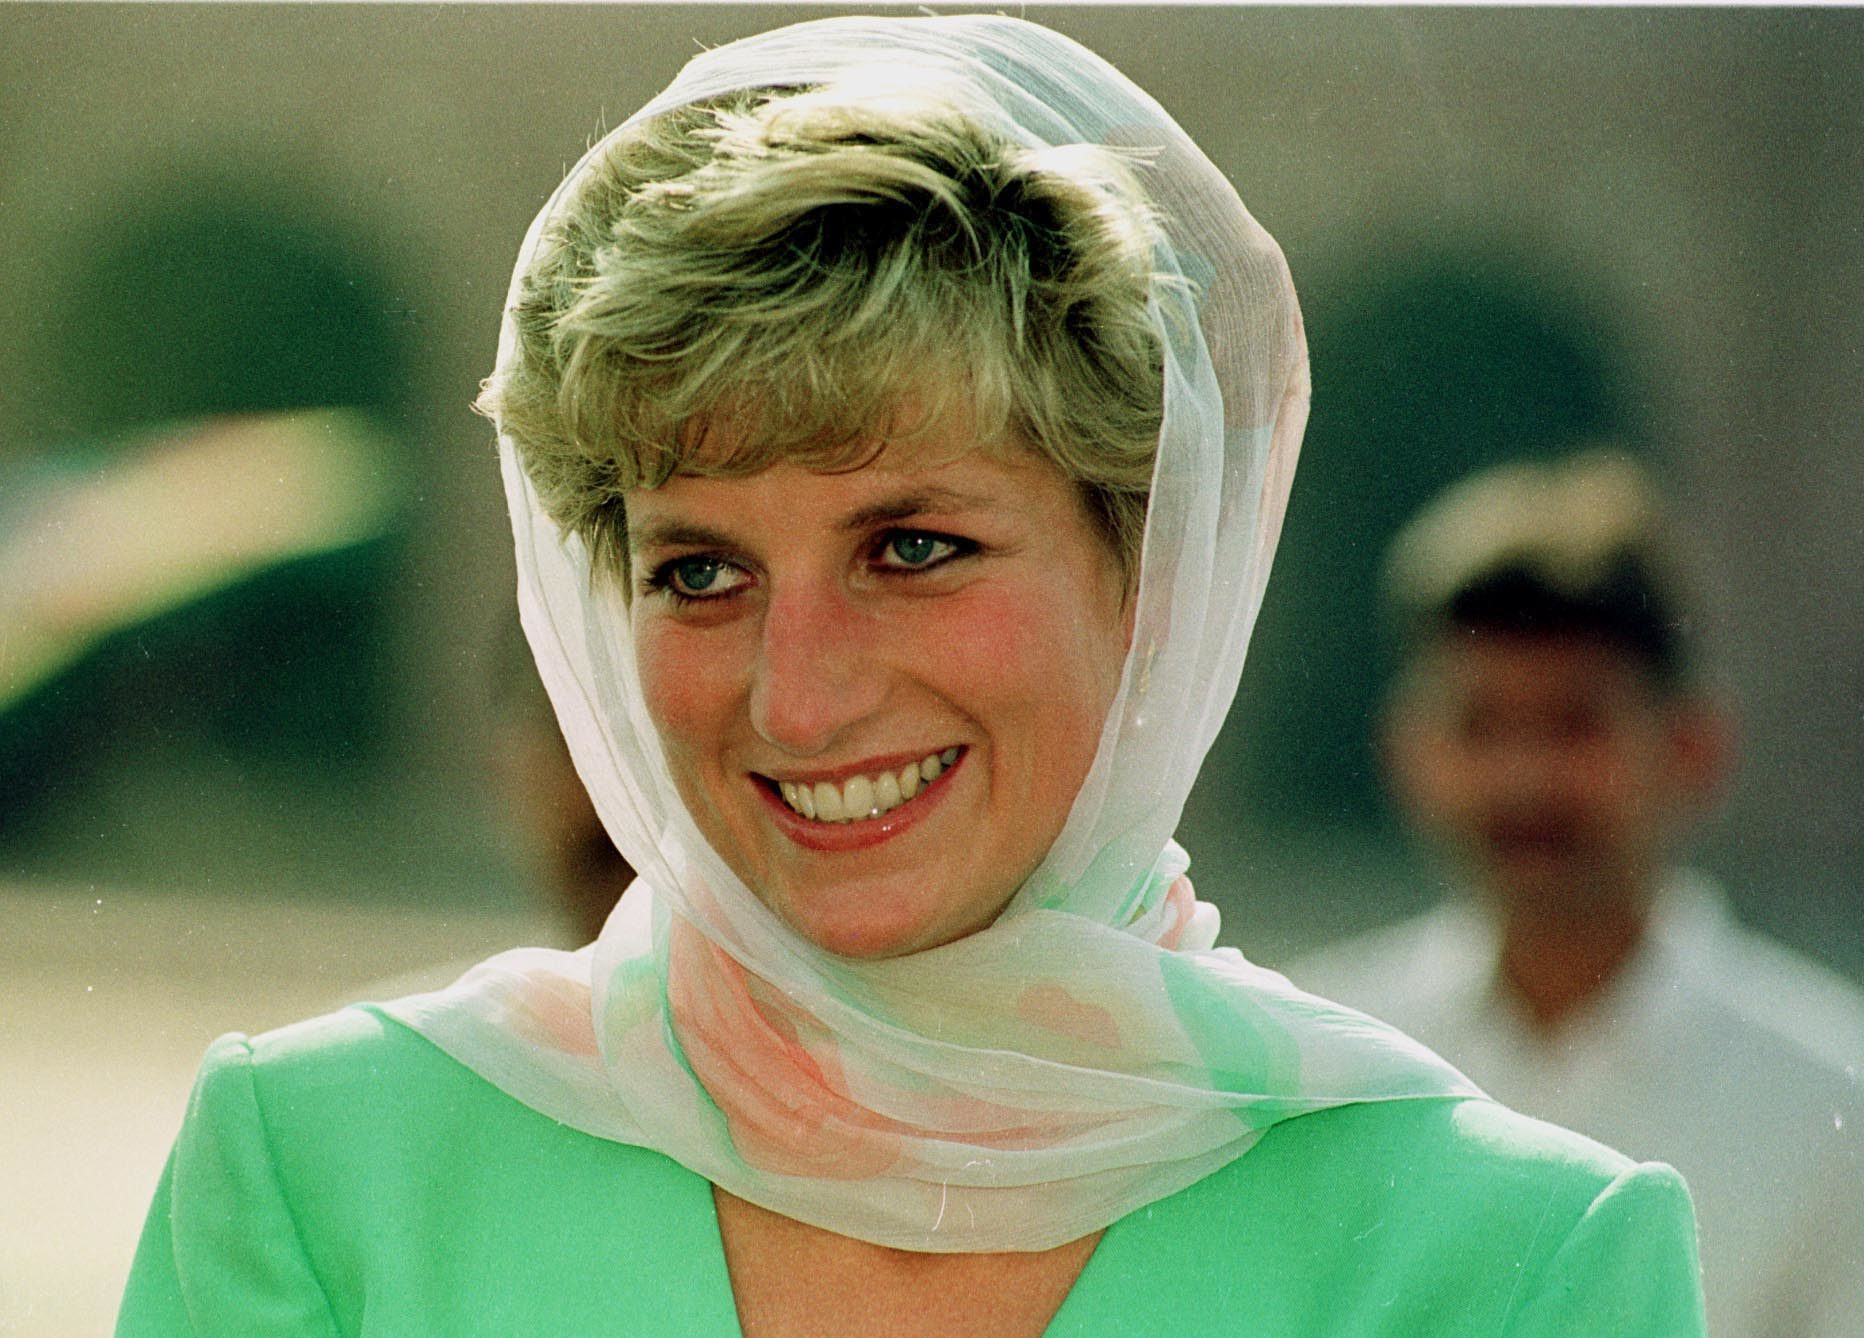 Princess Diana Pakistan 1992.pic Mike Forster